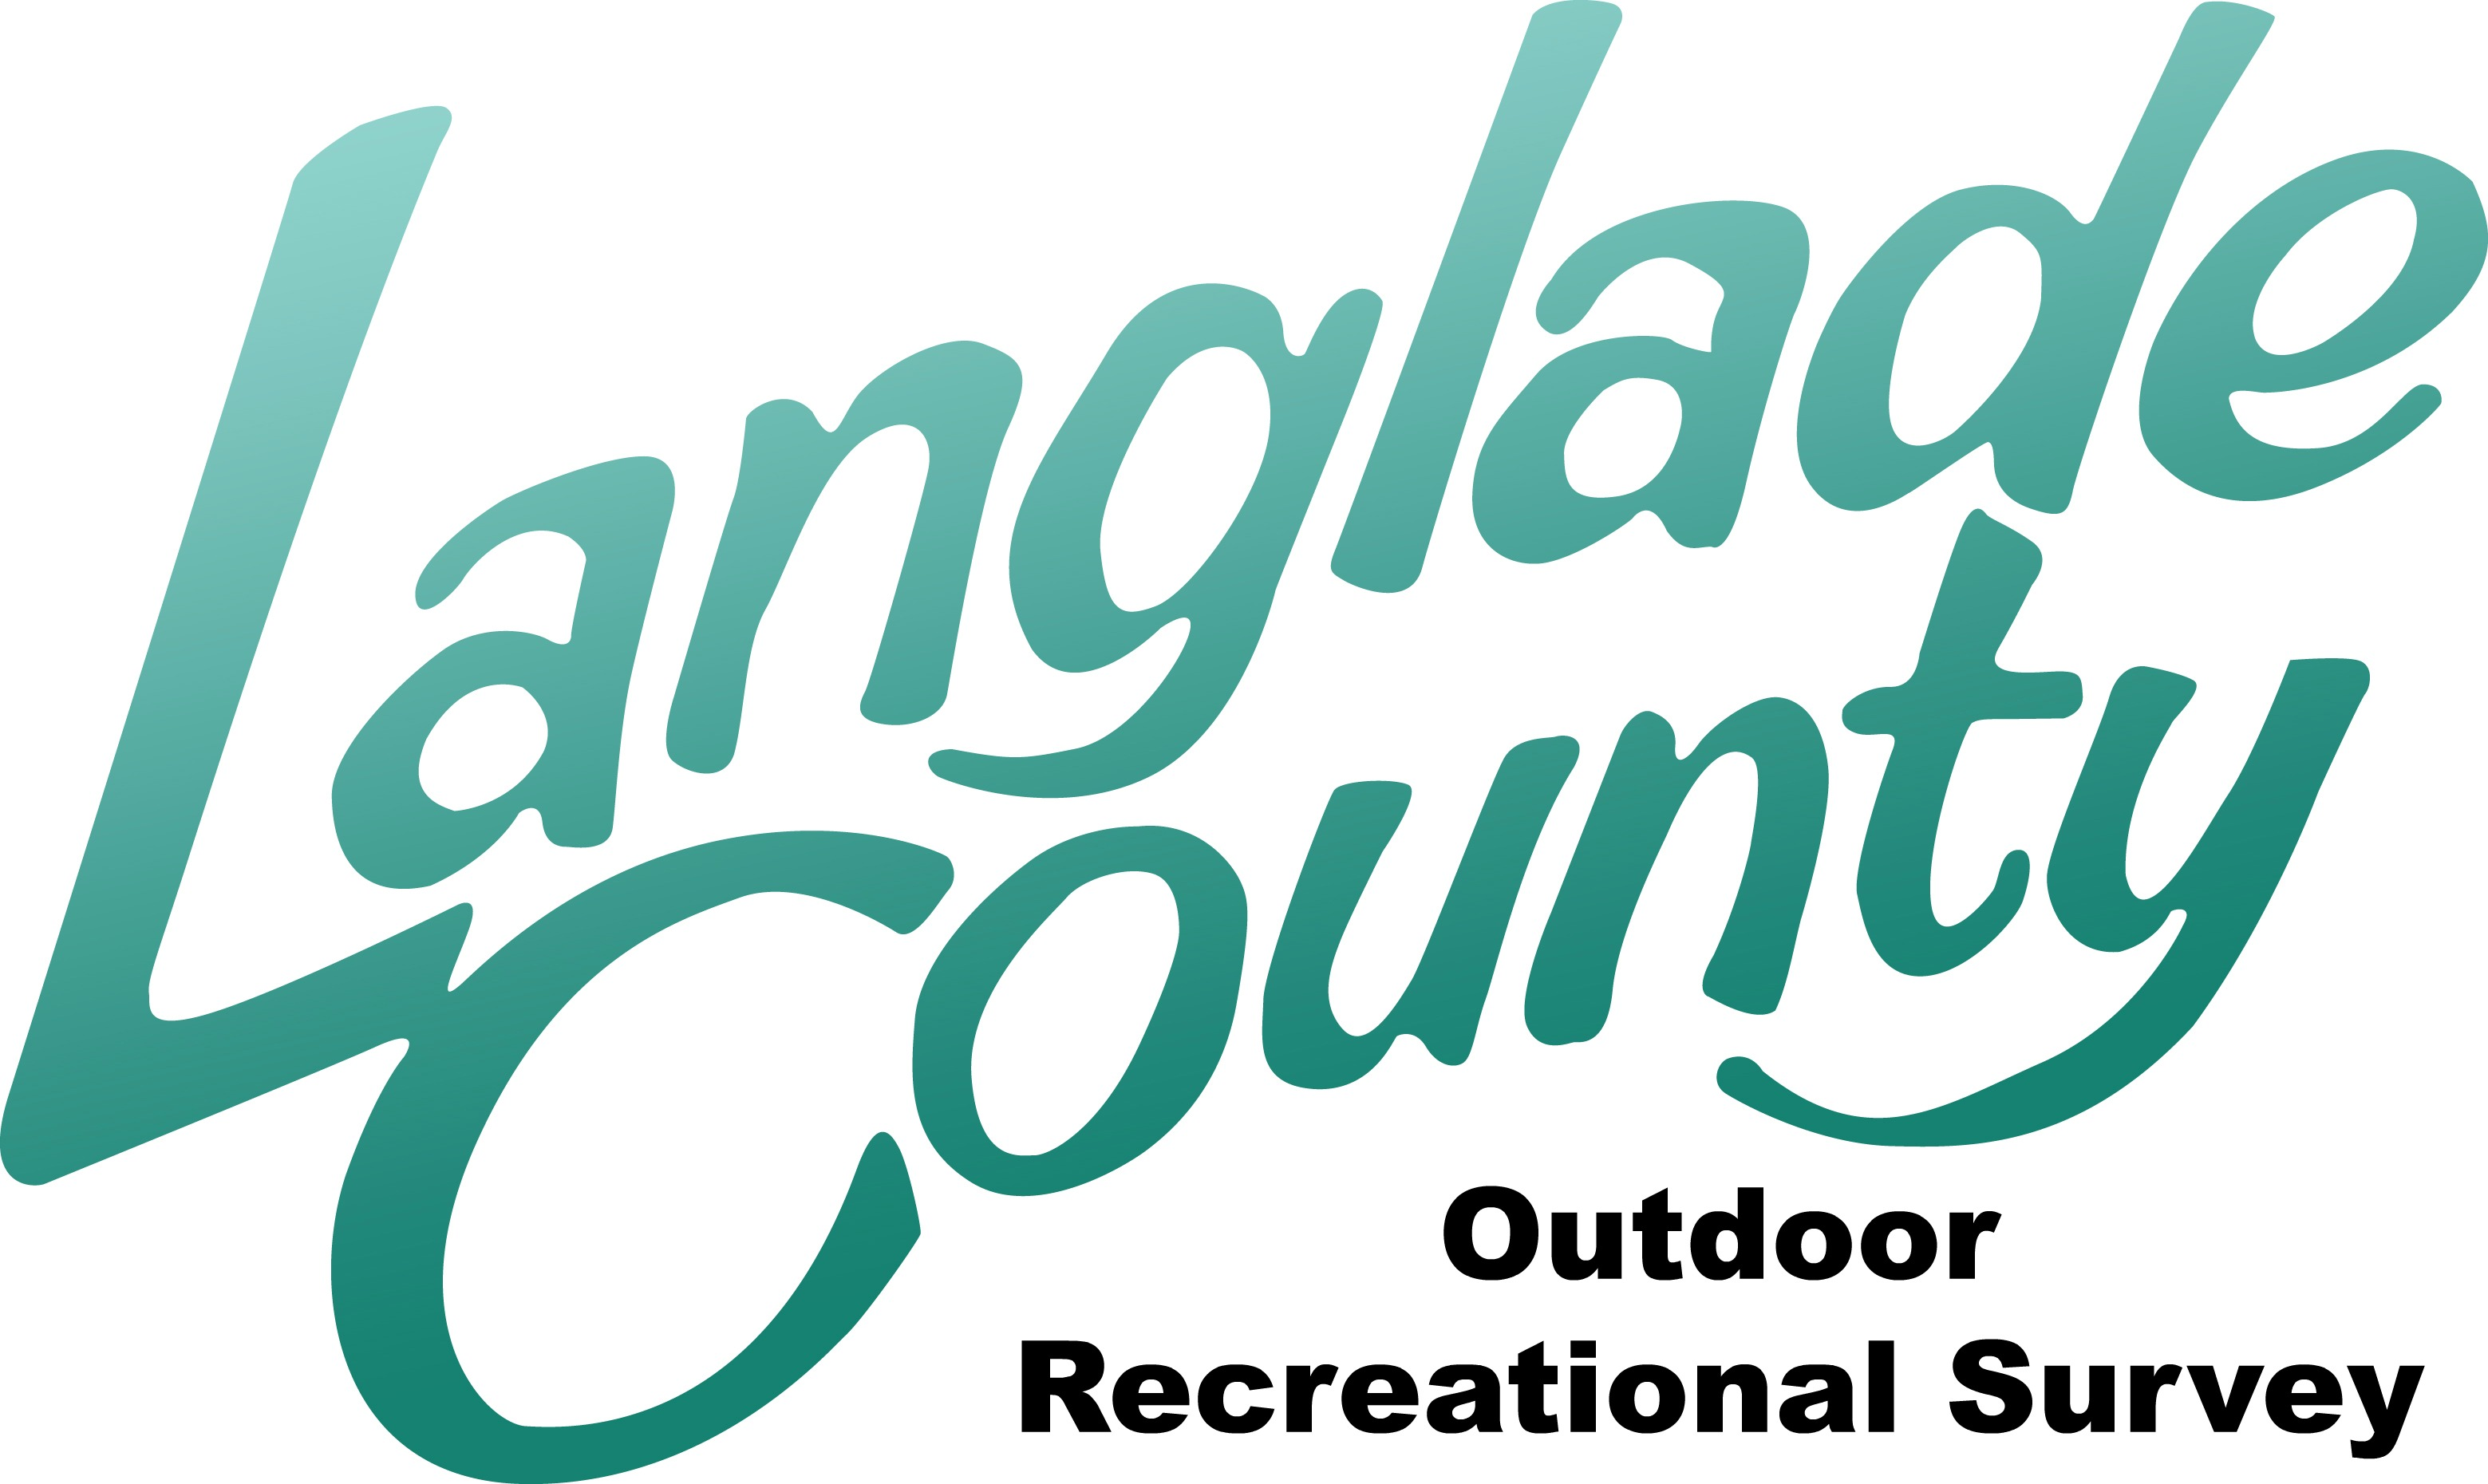 Langlade County Outdoor Recreational Survey